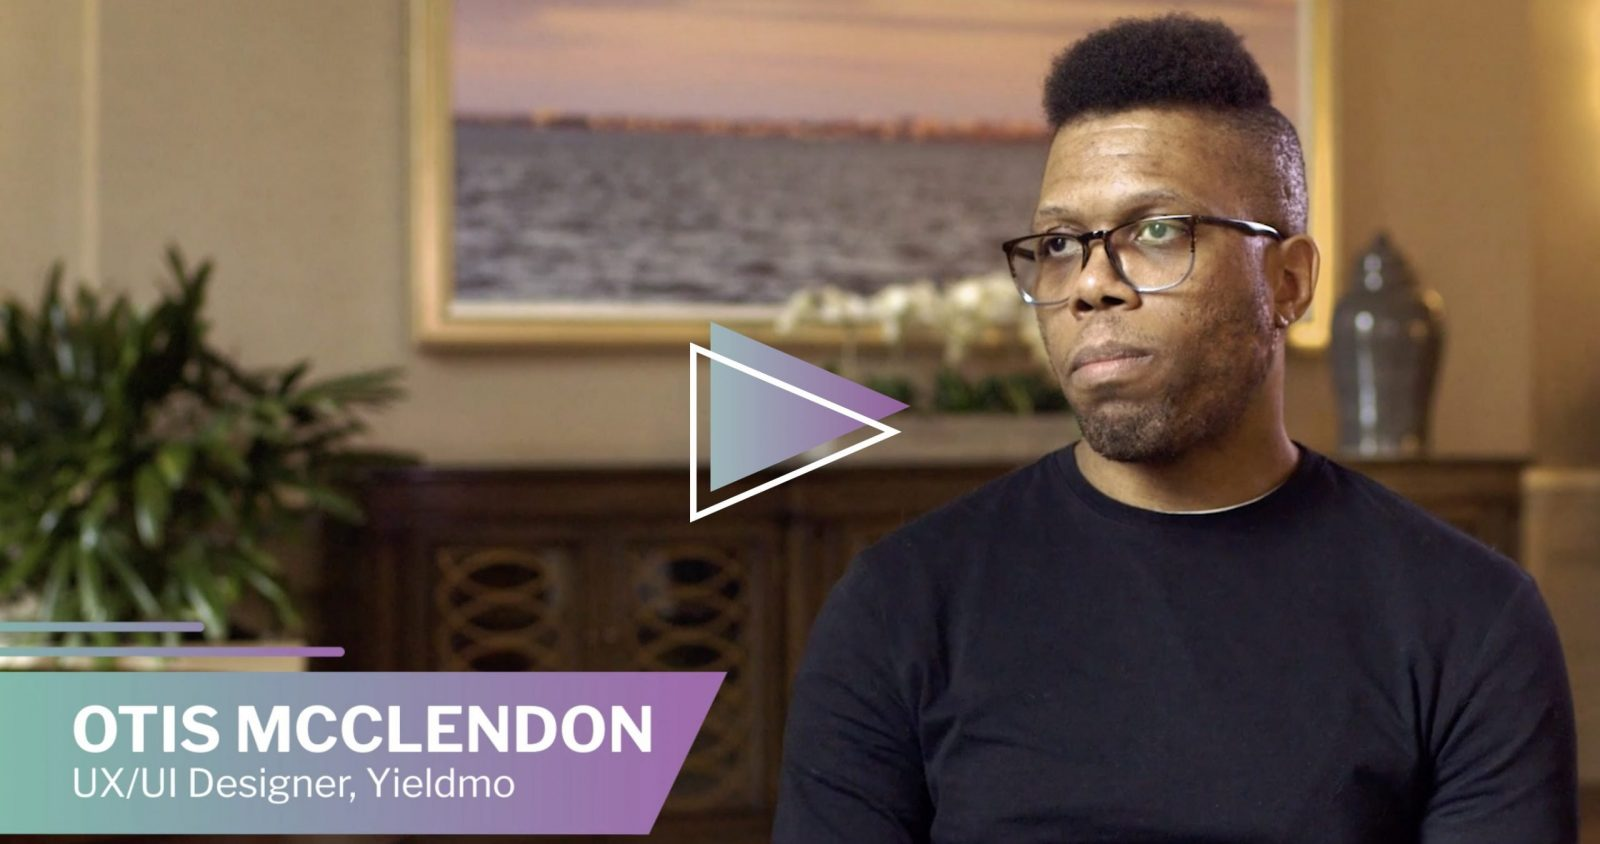 Otis McClendon Talks About How Creative and Media Capture Attention